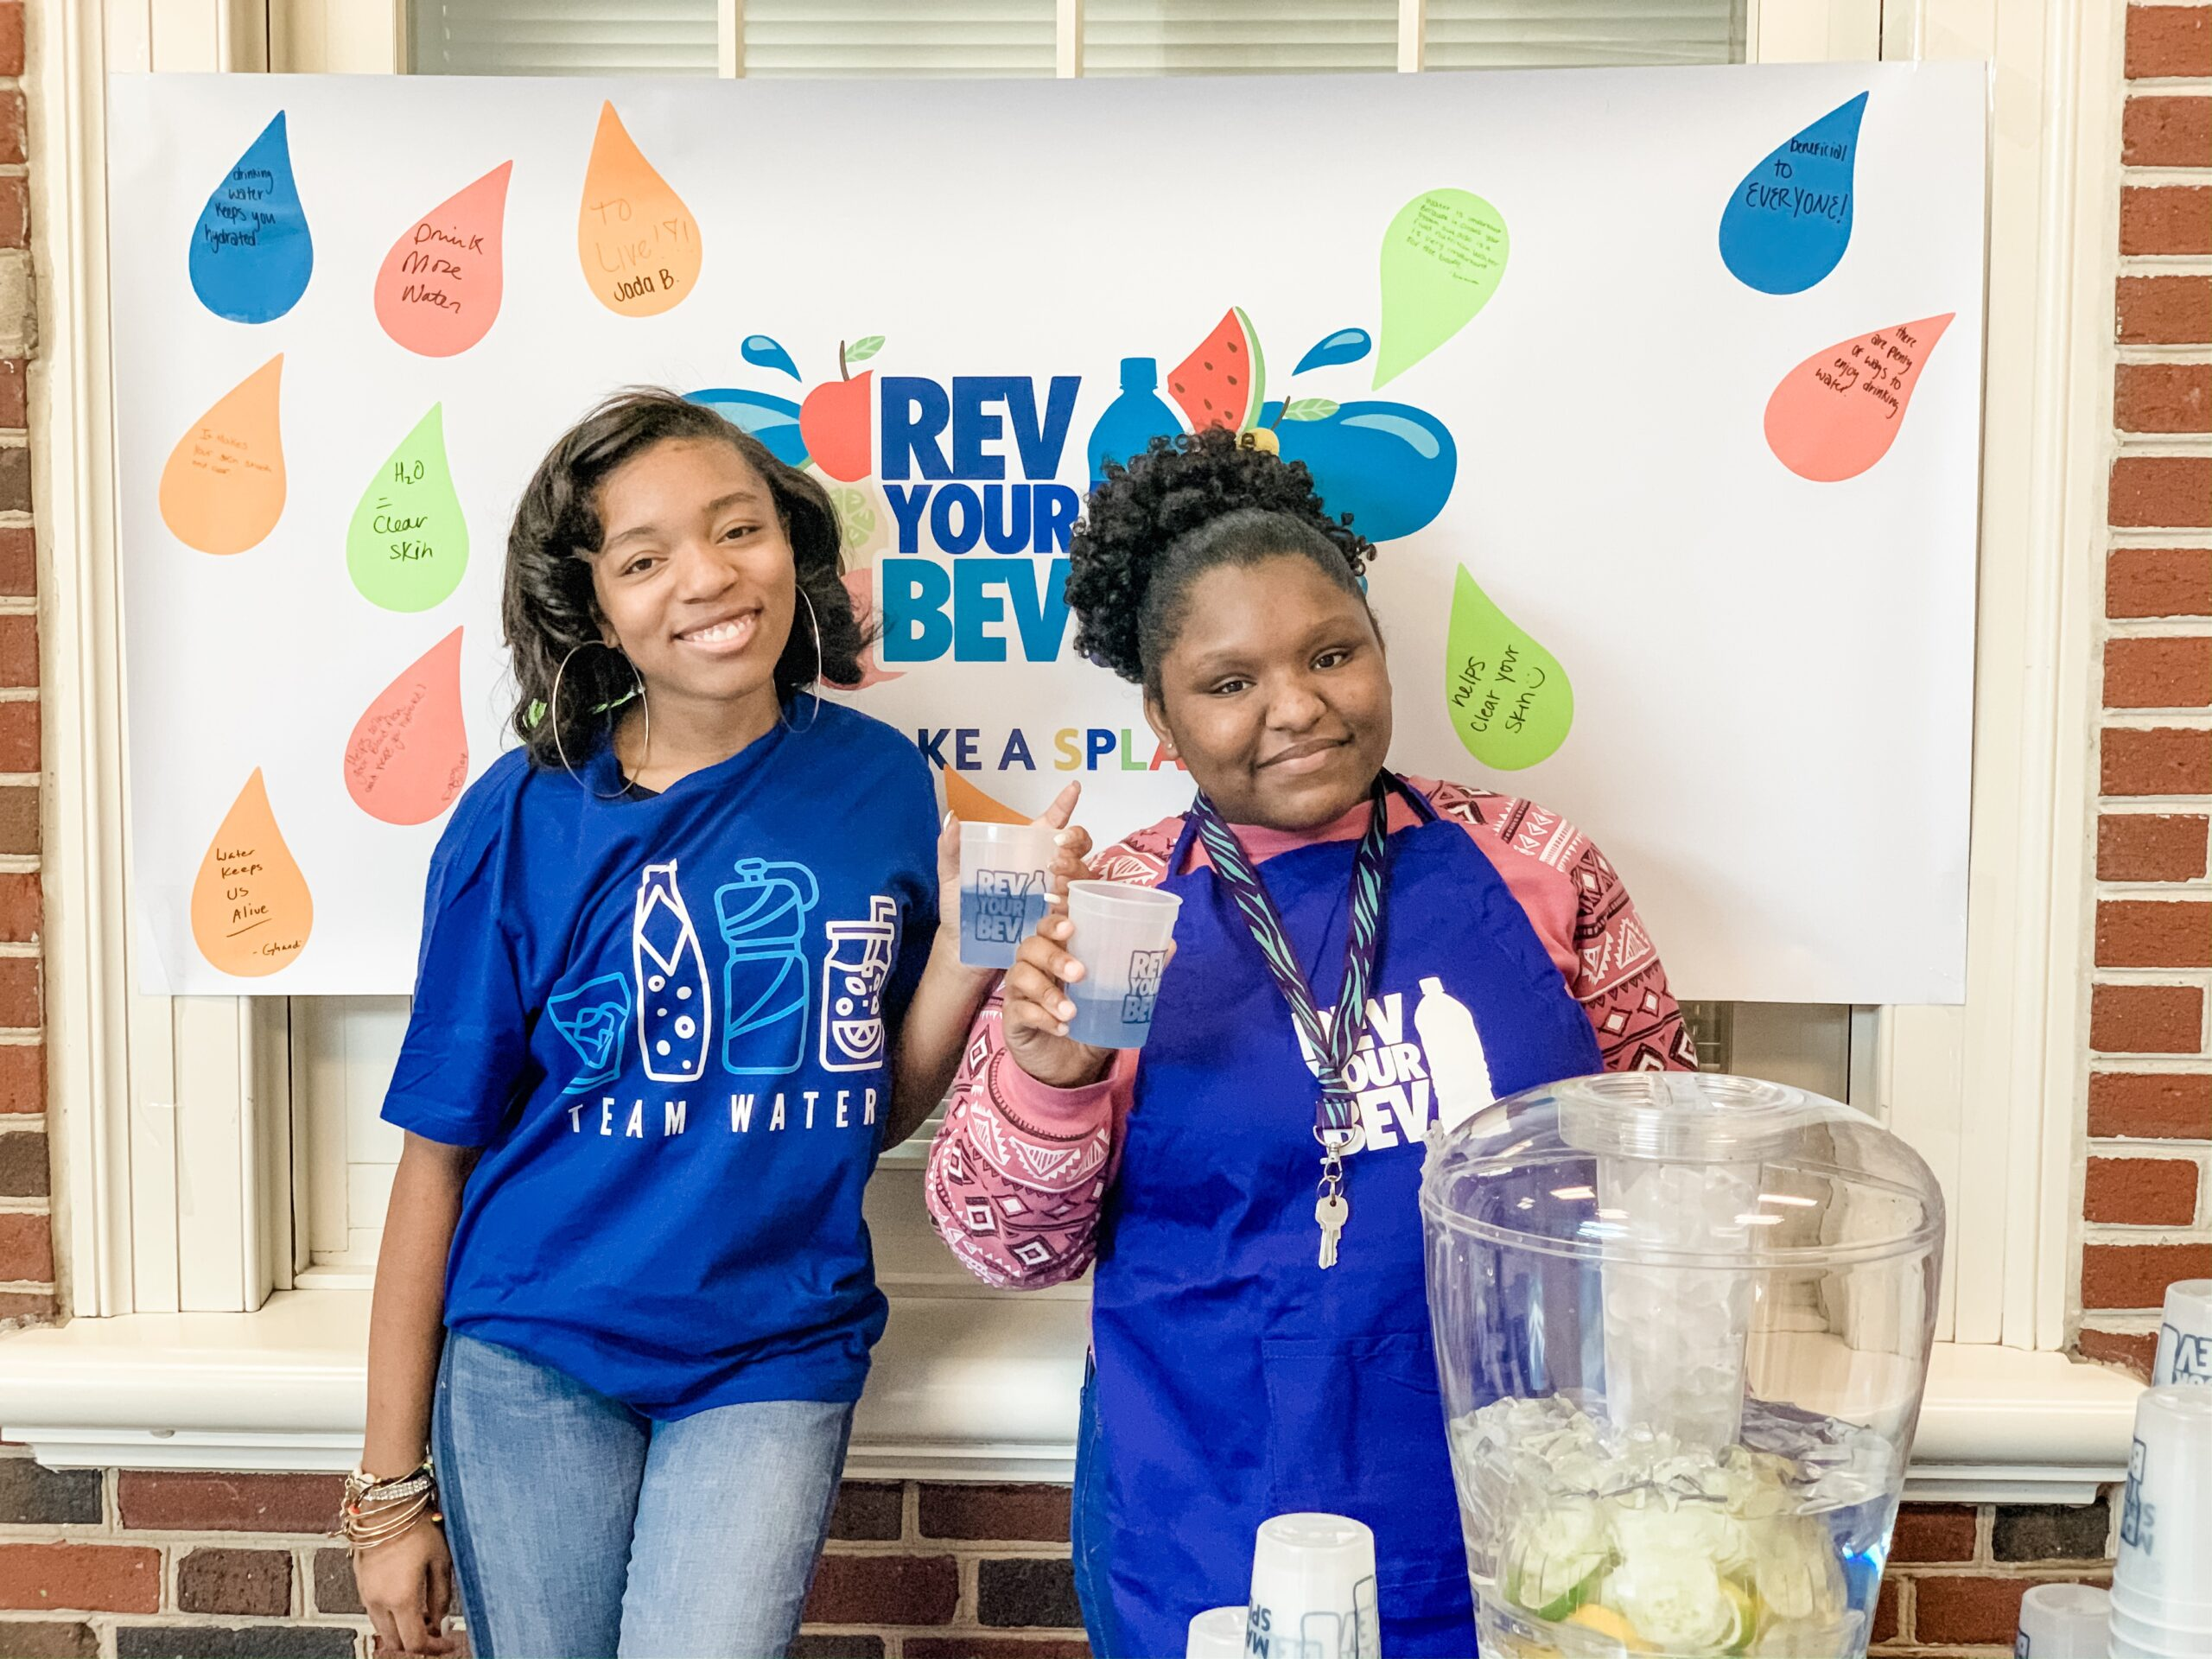 Two young high school students promoting Rev Your Bev